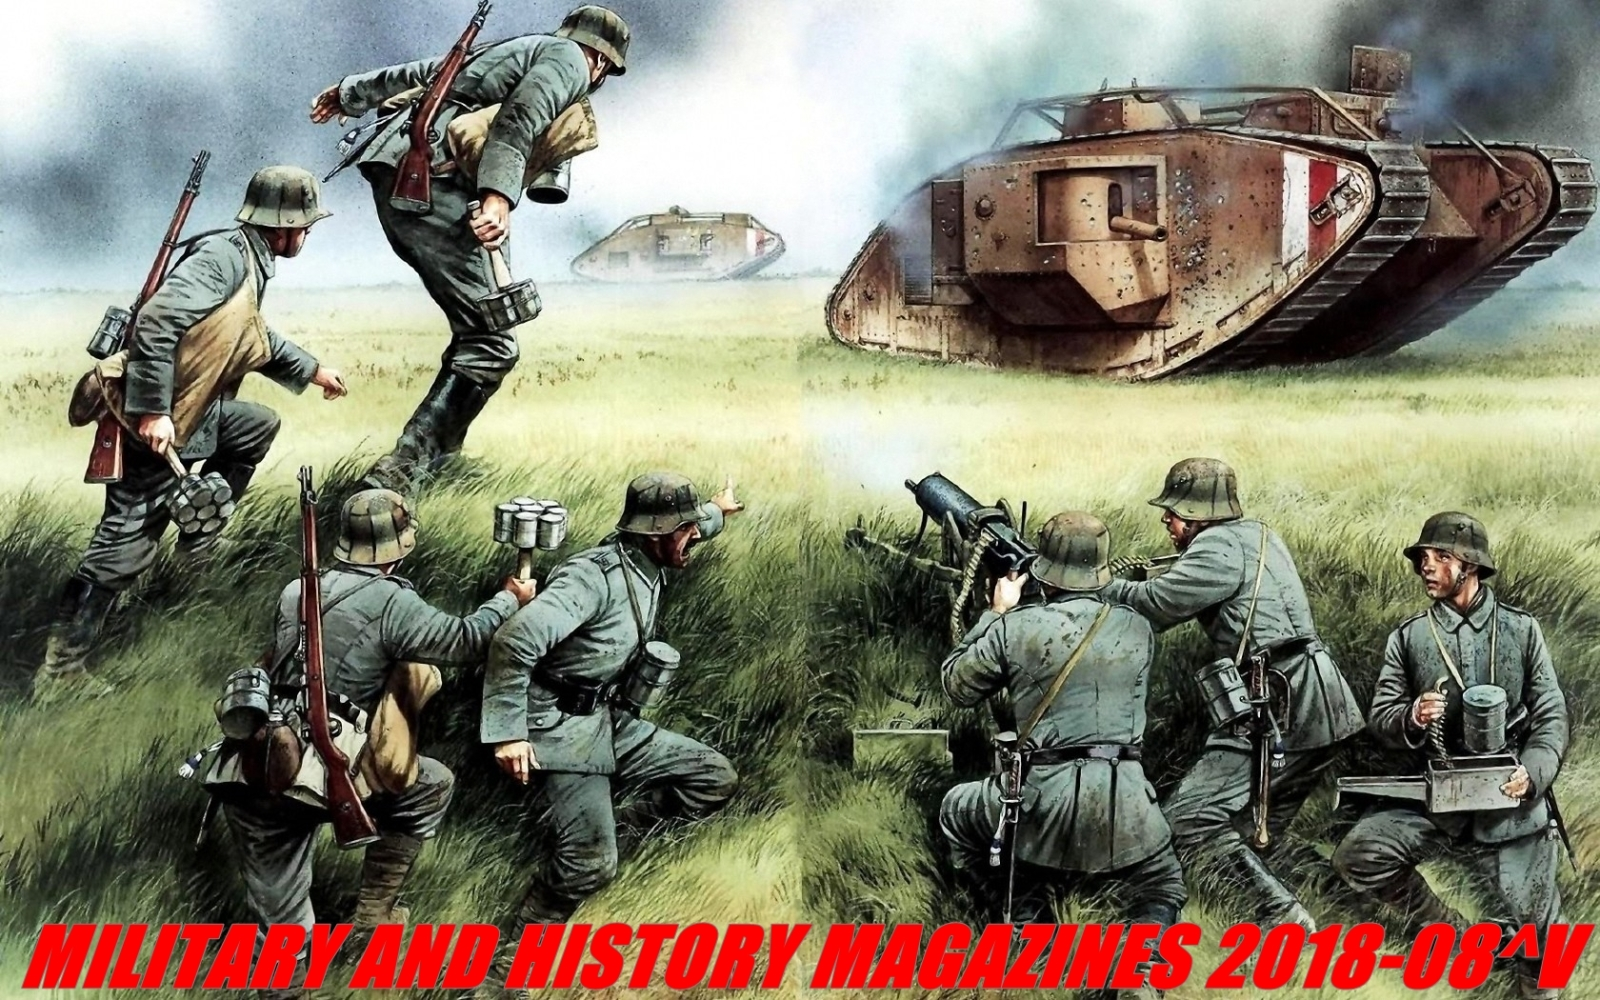 All about Third Reich Depot Military Collectables World War